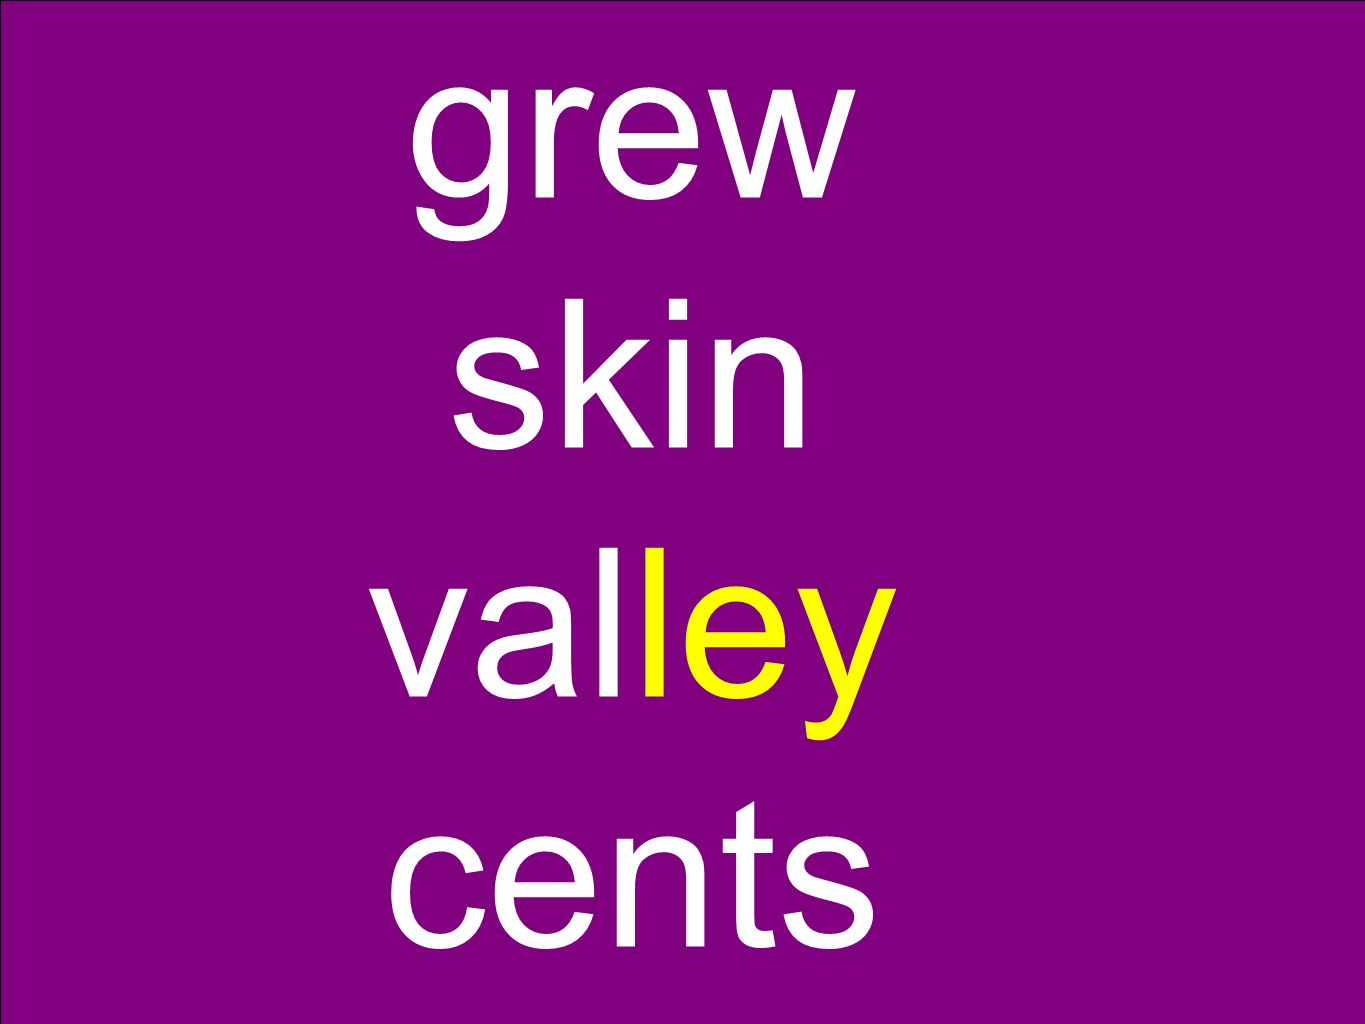 grew skin valley cents